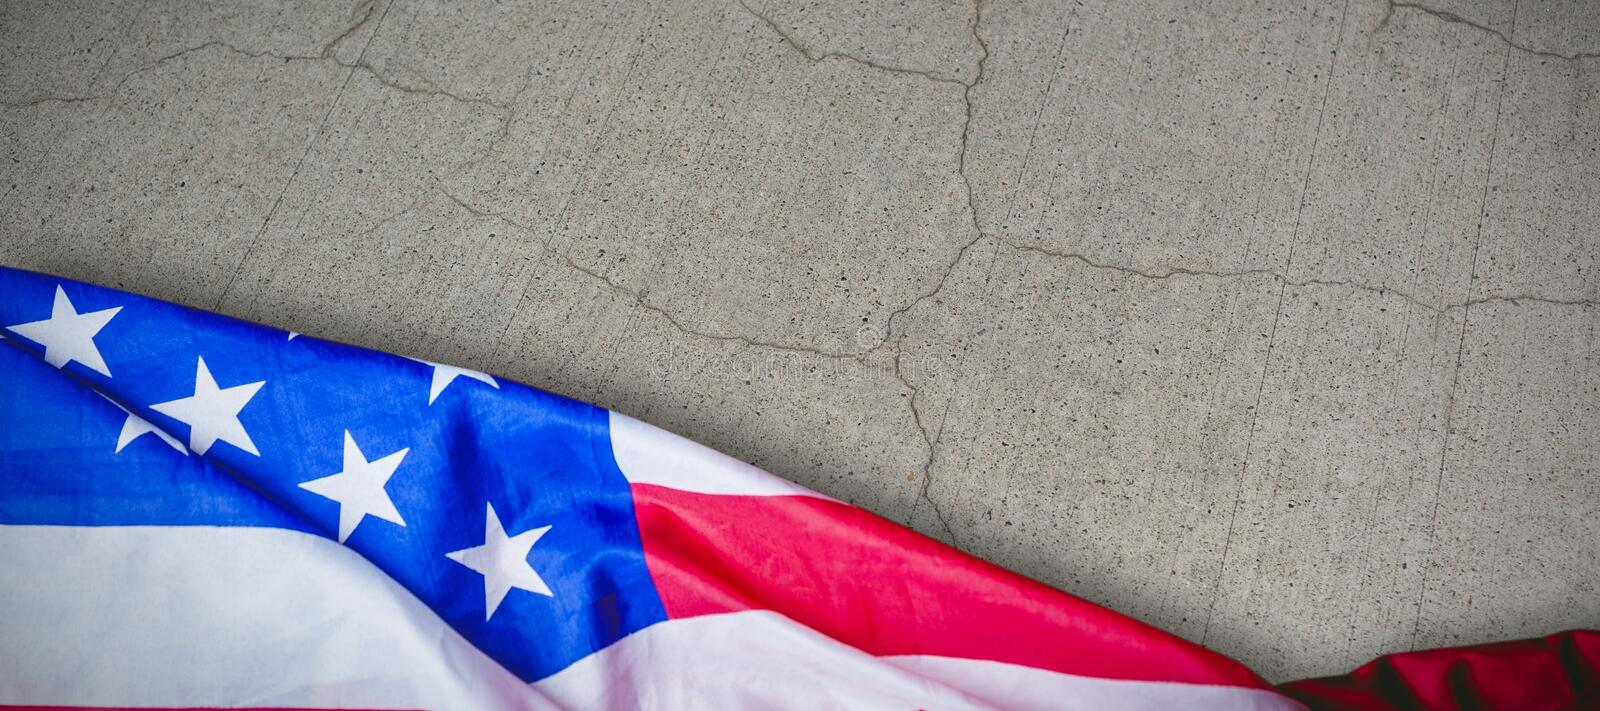 Composite image of us flag. US flag against gray cracked concrete wall stock images